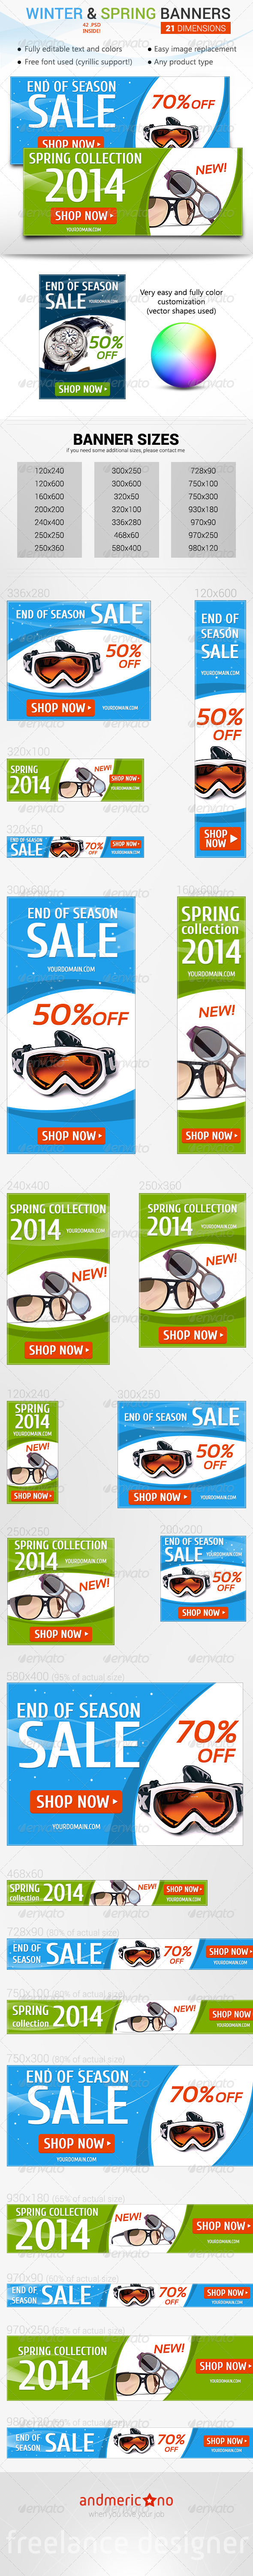 Winter Sale & Spring New Collection - Banners & Ads Web Elements